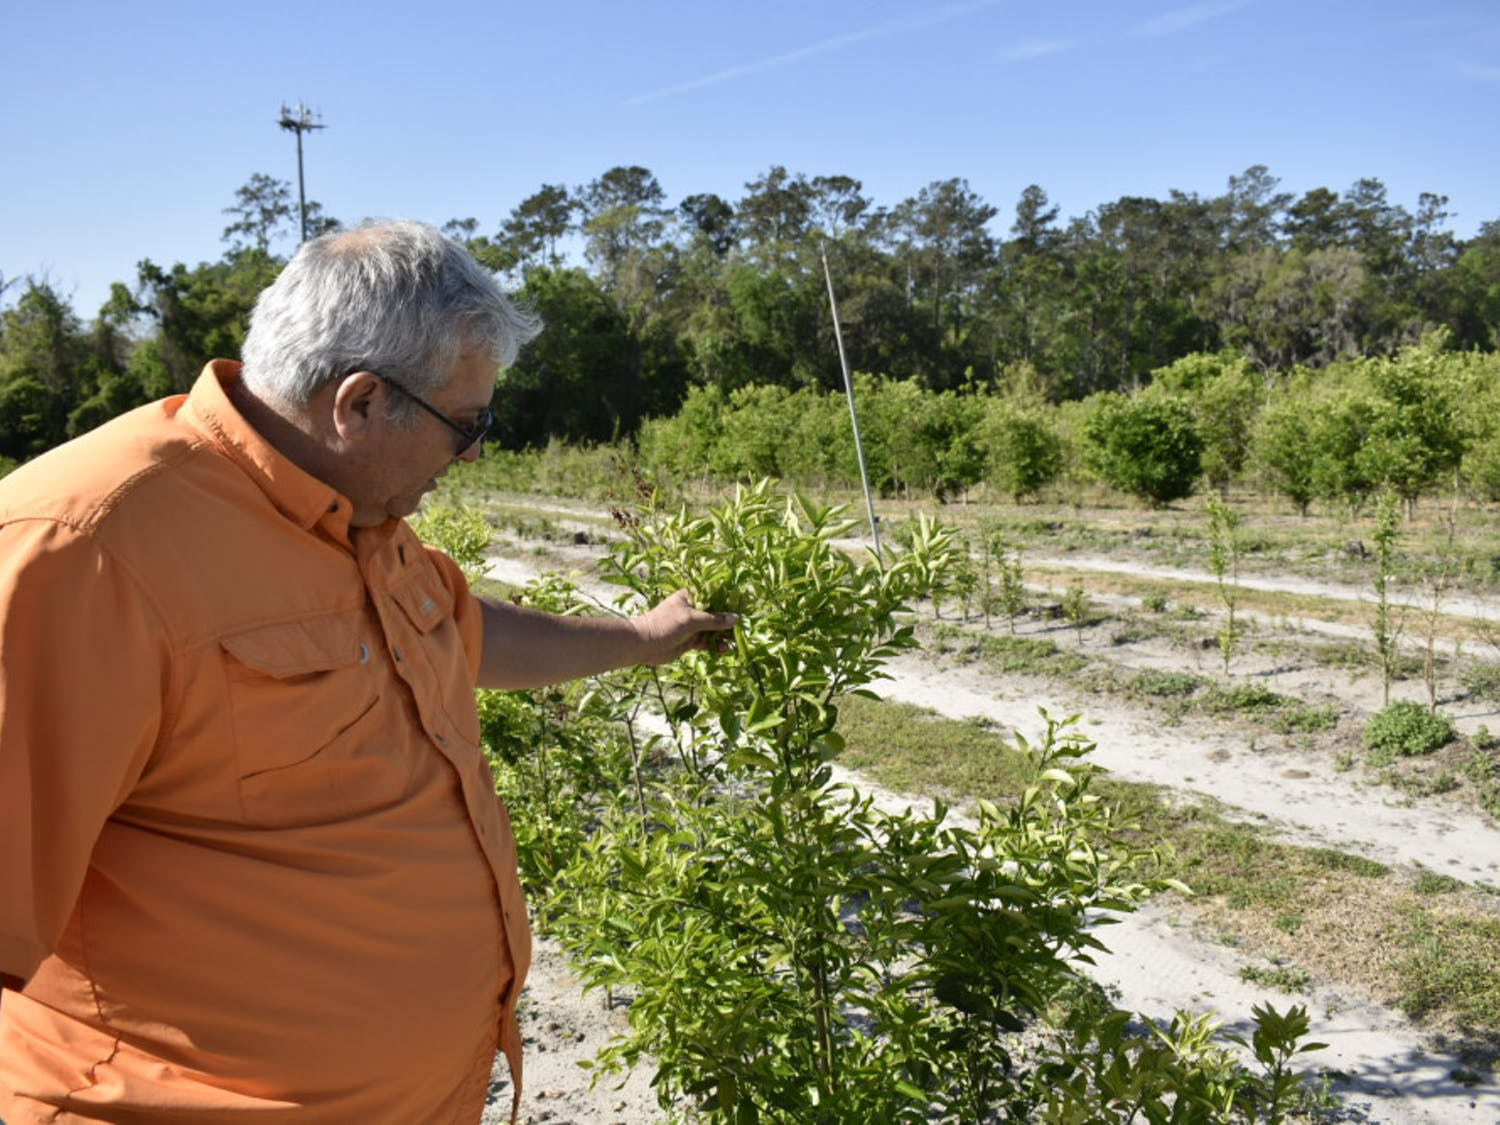 José Chaparro, an associate horticultural sciences professor who's been breeding fruit varieties at UF since 2004, checks on a citrus plant variety bred with genes to make it more freeze-resistant.